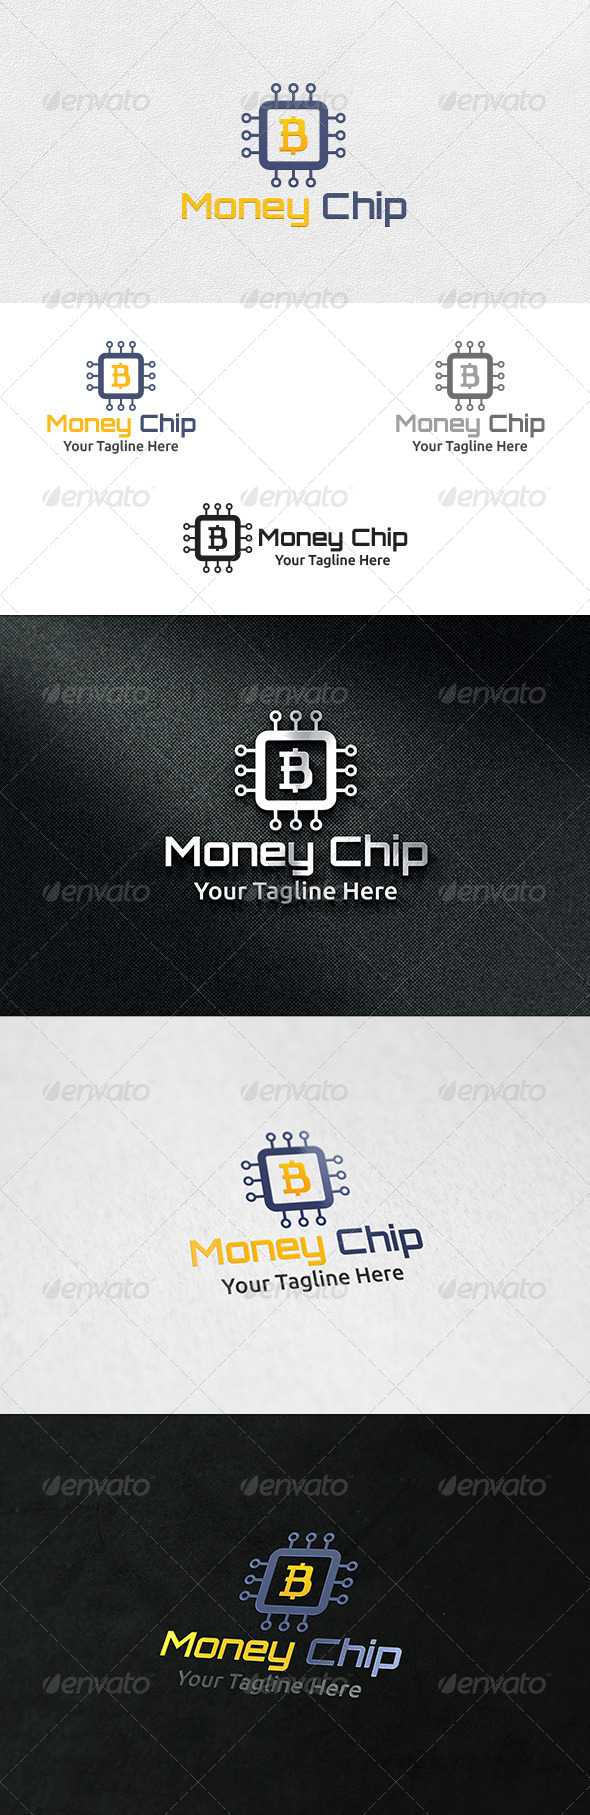 GraphicRiver Money Chip Logo Template 6634555